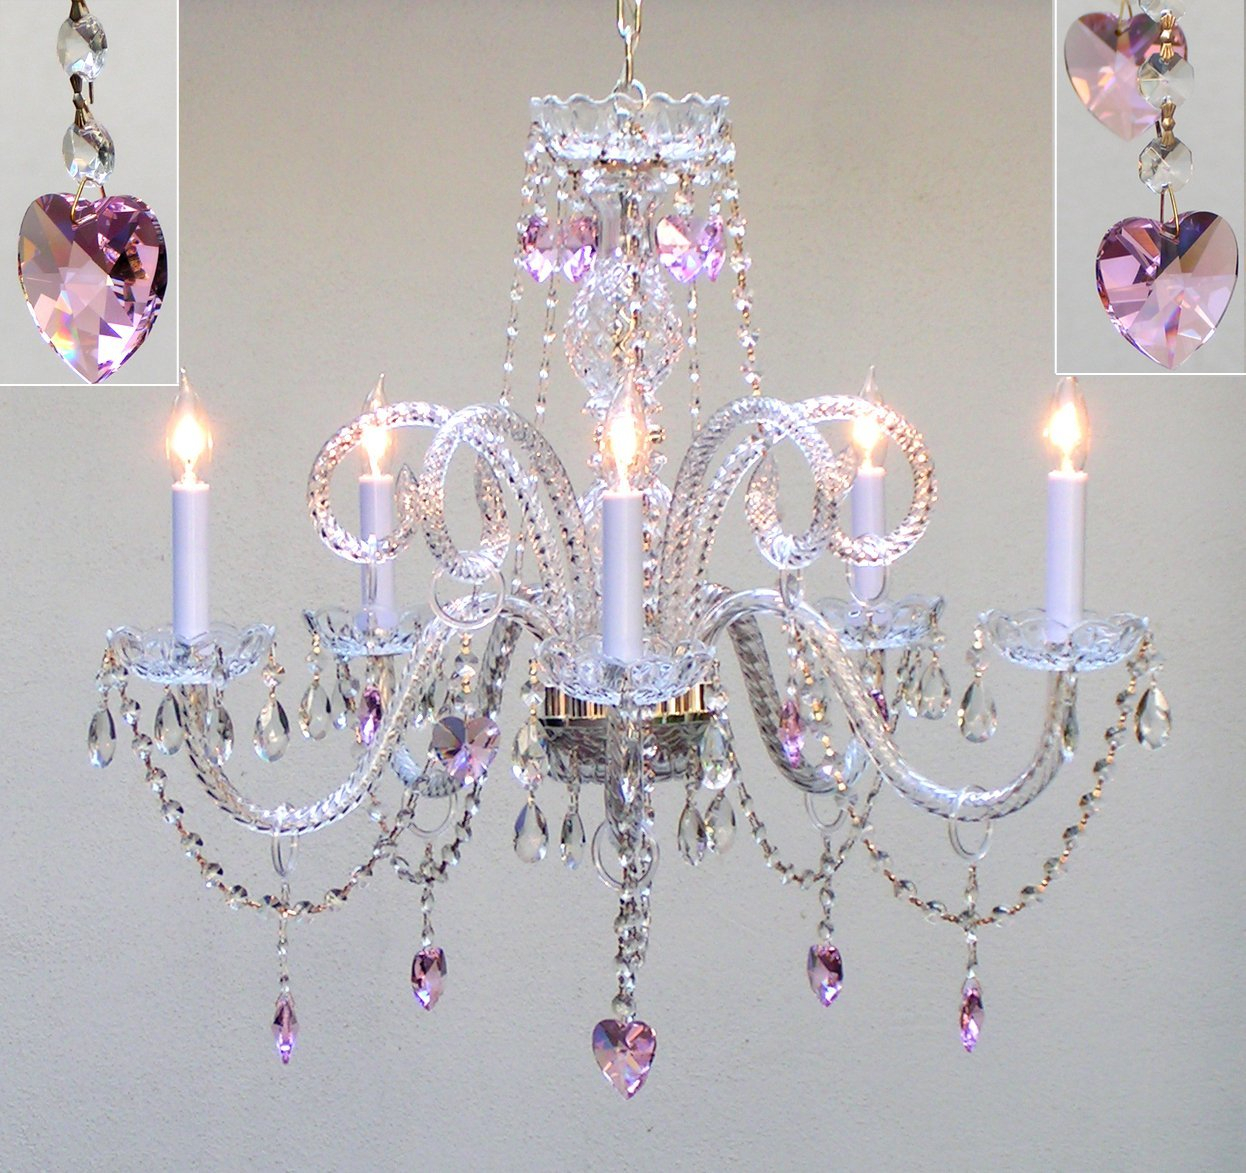 Kanter 5-Light Candle Style Chandelier for Shaylee 5-Light Candle Style Chandeliers (Image 11 of 30)